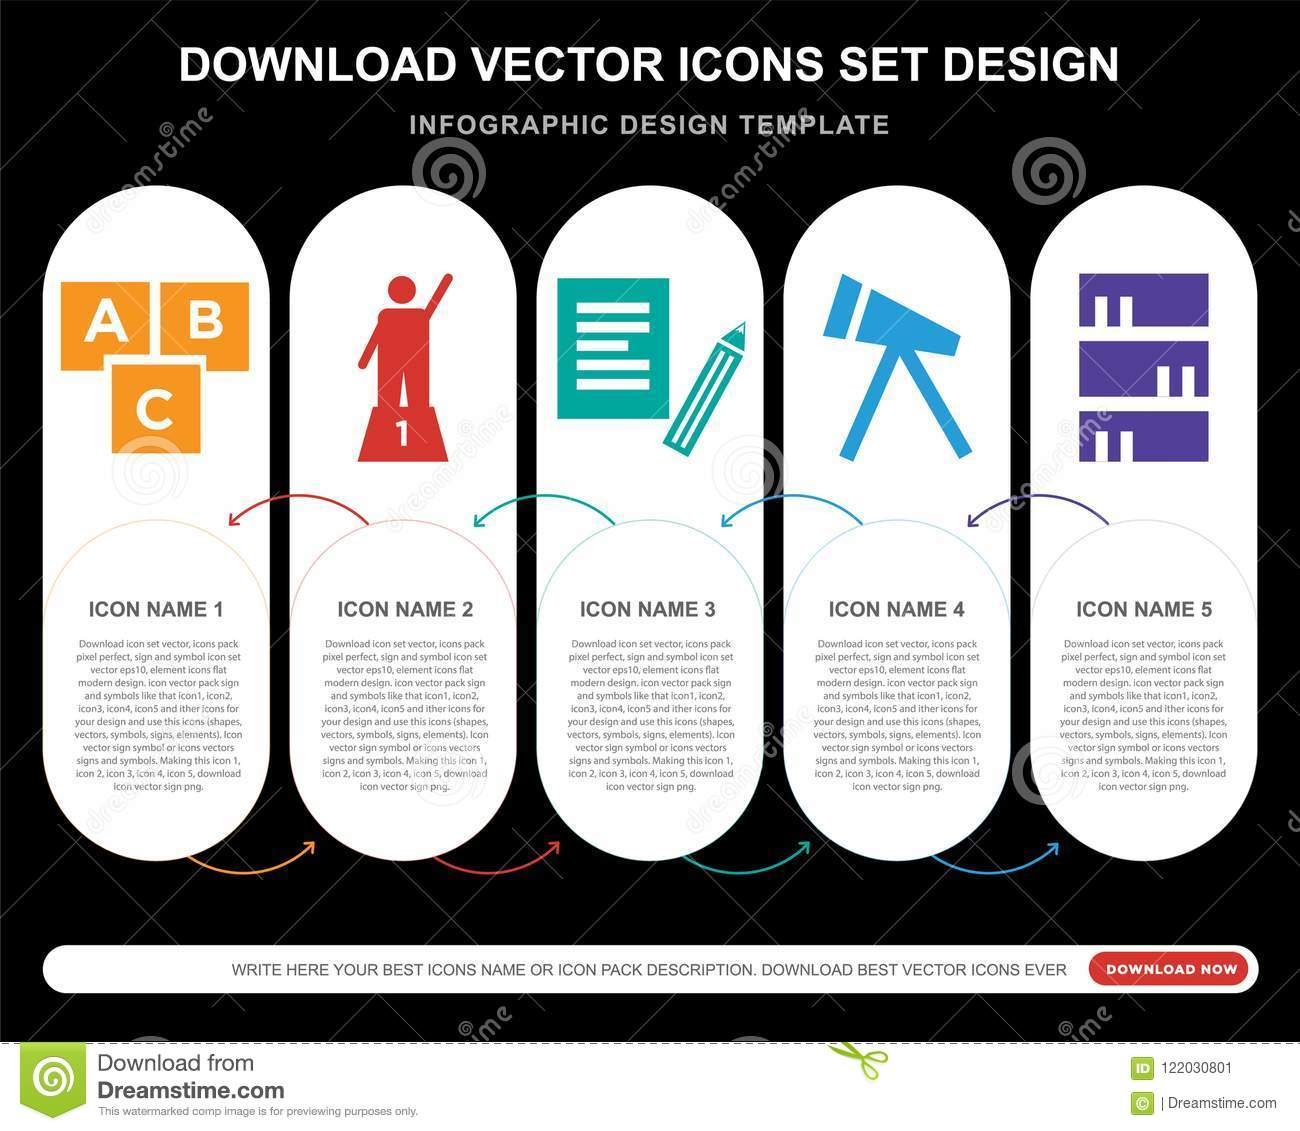 5 Vector Icons Such As Creche Podium New Document Telescope Bookshelf With